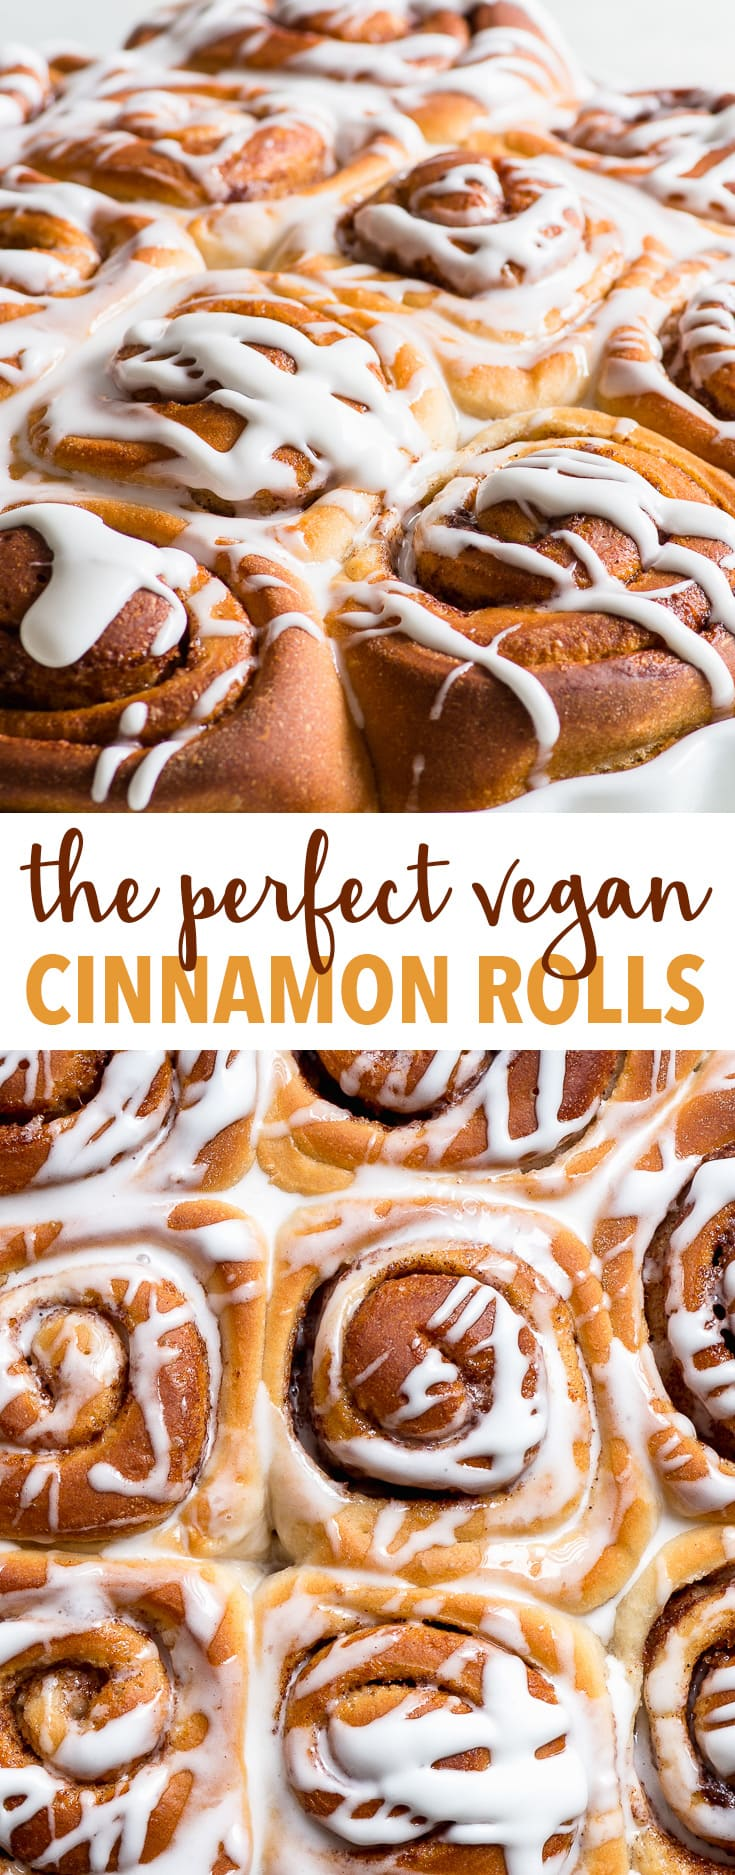 The Perfect Easy Vegan Cinnamon Rolls - The fluffiest, softest, most decadent vegan cinnamon rolls you'll ever taste. With only 8 ingredients, this recipe couldn't be simpler – and it's entirely plant based! Vegan comfort food at its best. Cinnamon rolls recipe. Homemade cinnamon rolls. Vegan dessert recipes. Vegan baking ideas. Easy vegan recipes. Vegan food. Vegan breakfast recipes. Easy breakfast ideas. #vegan #cinnamonrolls #dessert #recipe